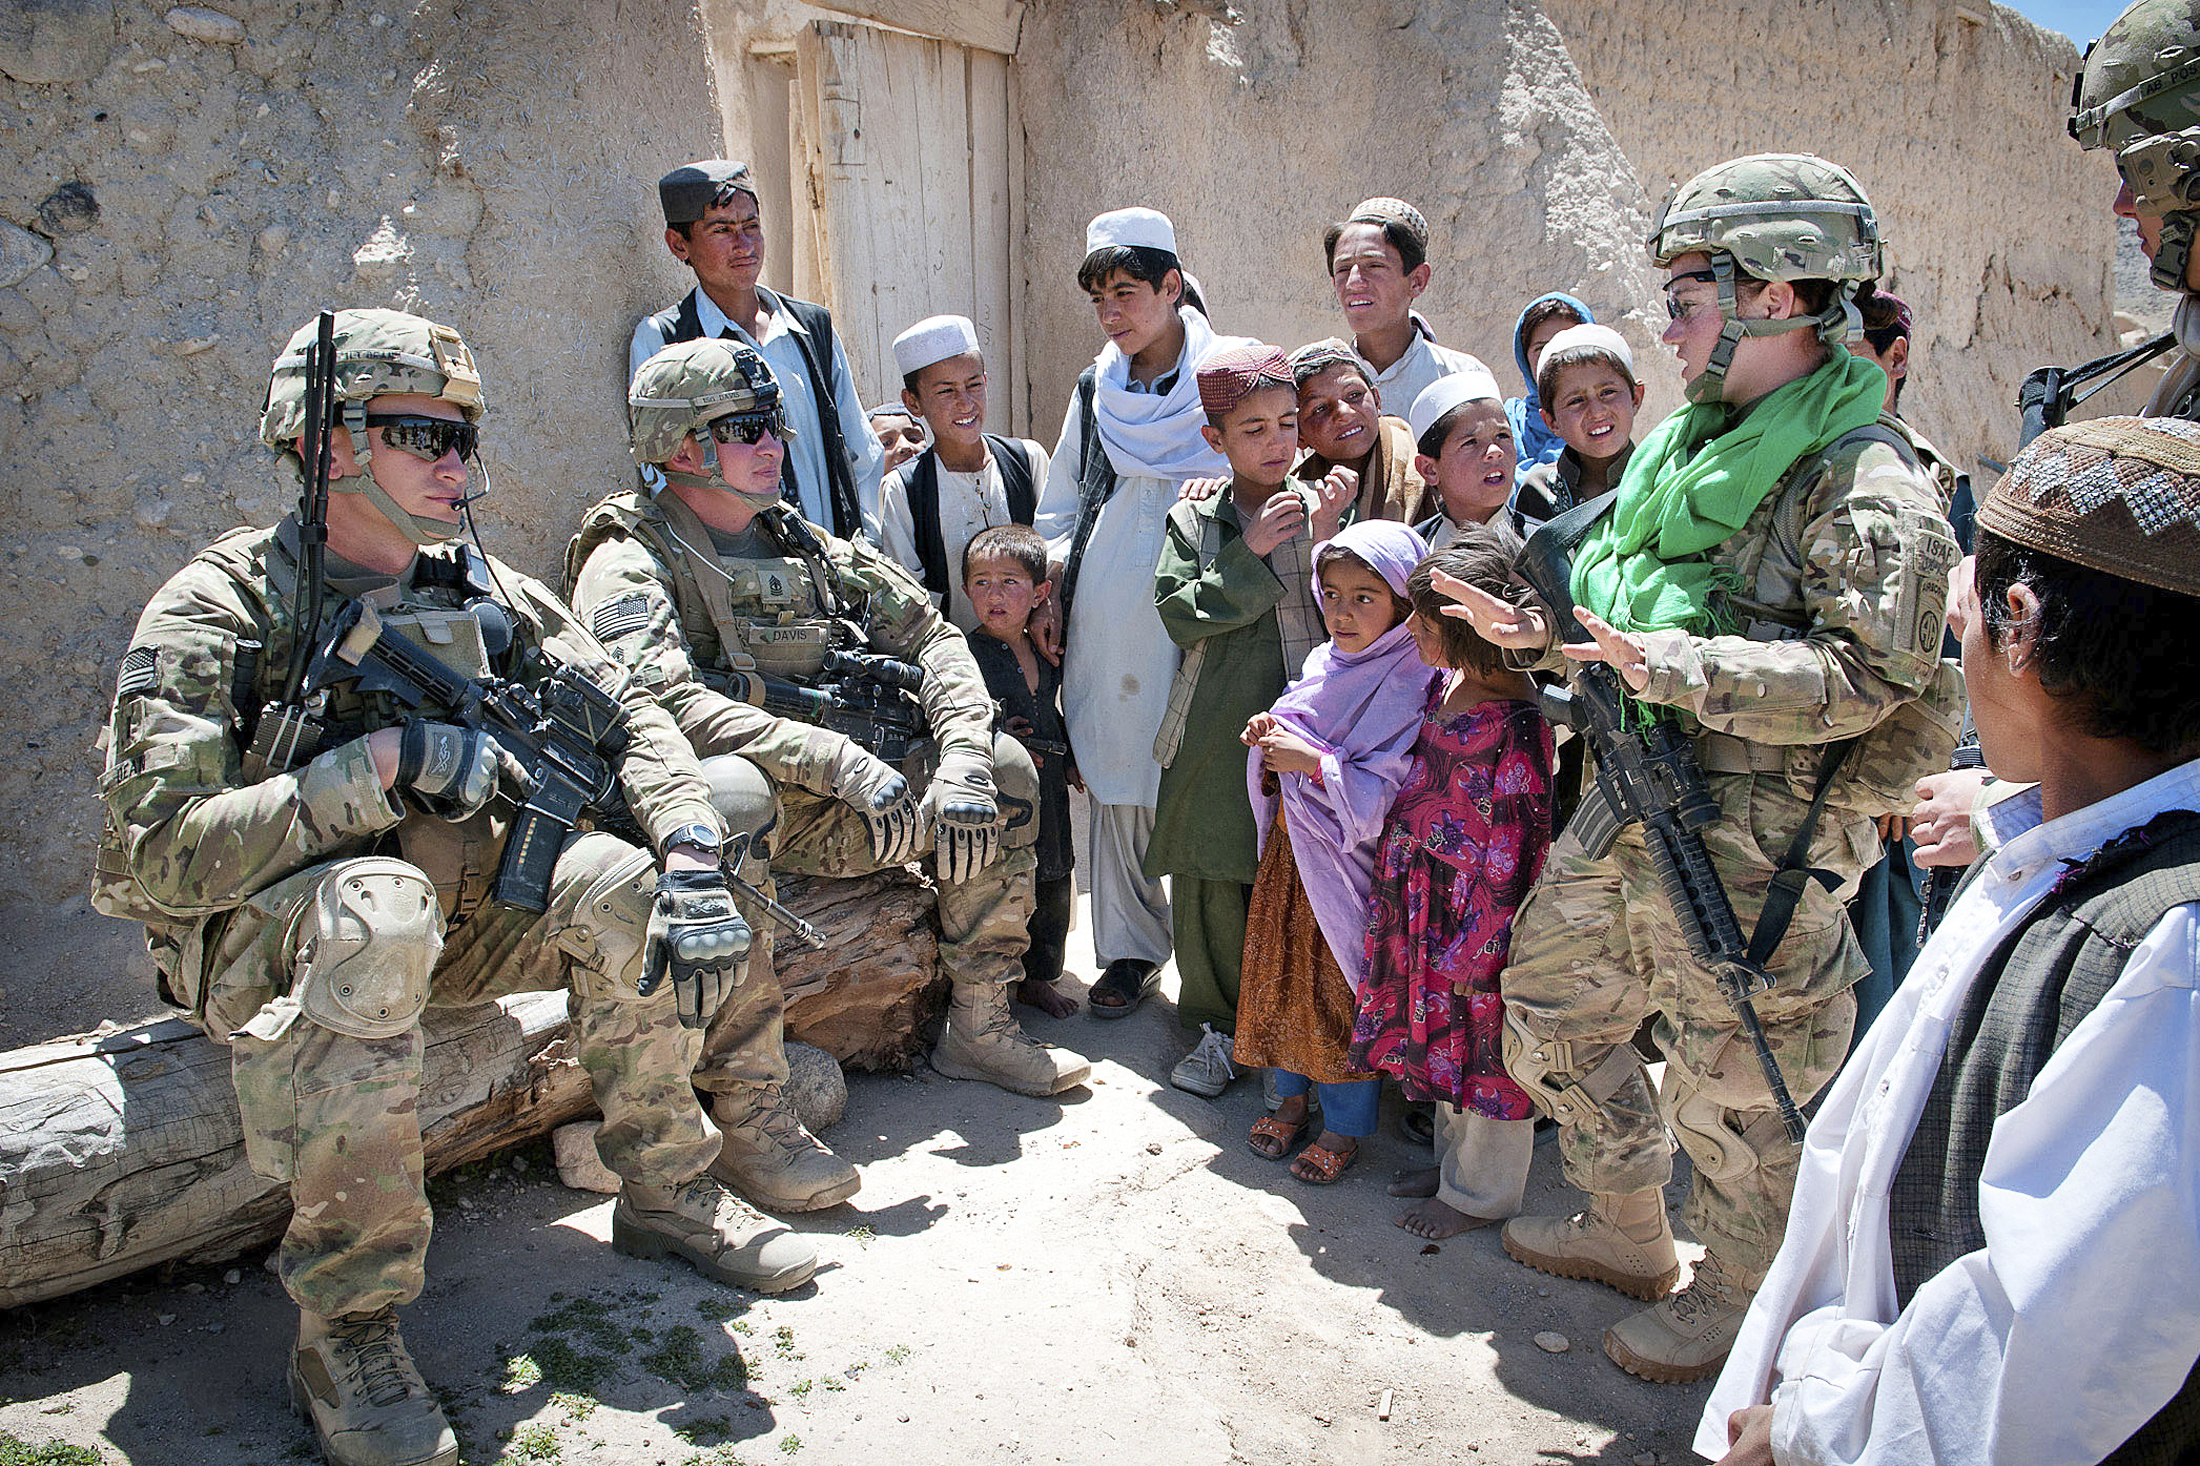 Men In Us Special Operations Forces Believe Women Are Not